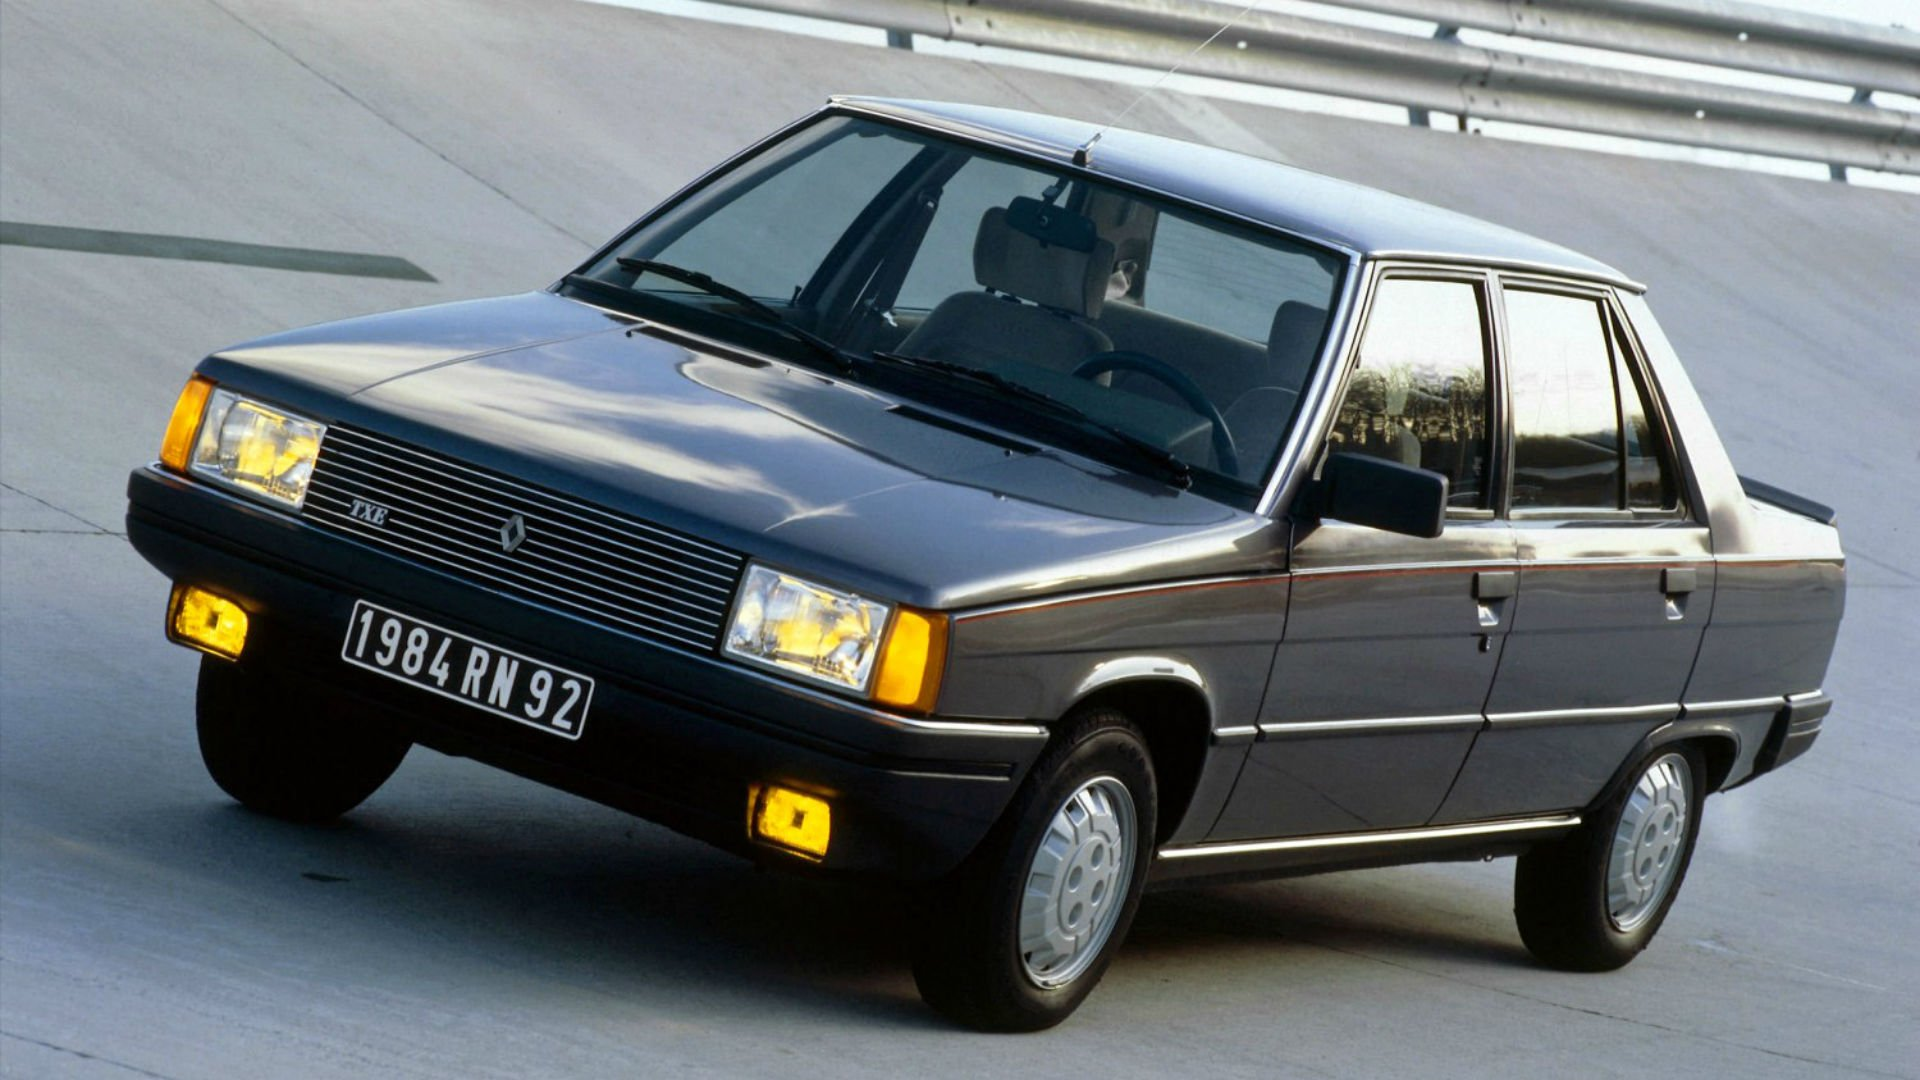 Whatever happened to the Renault 9